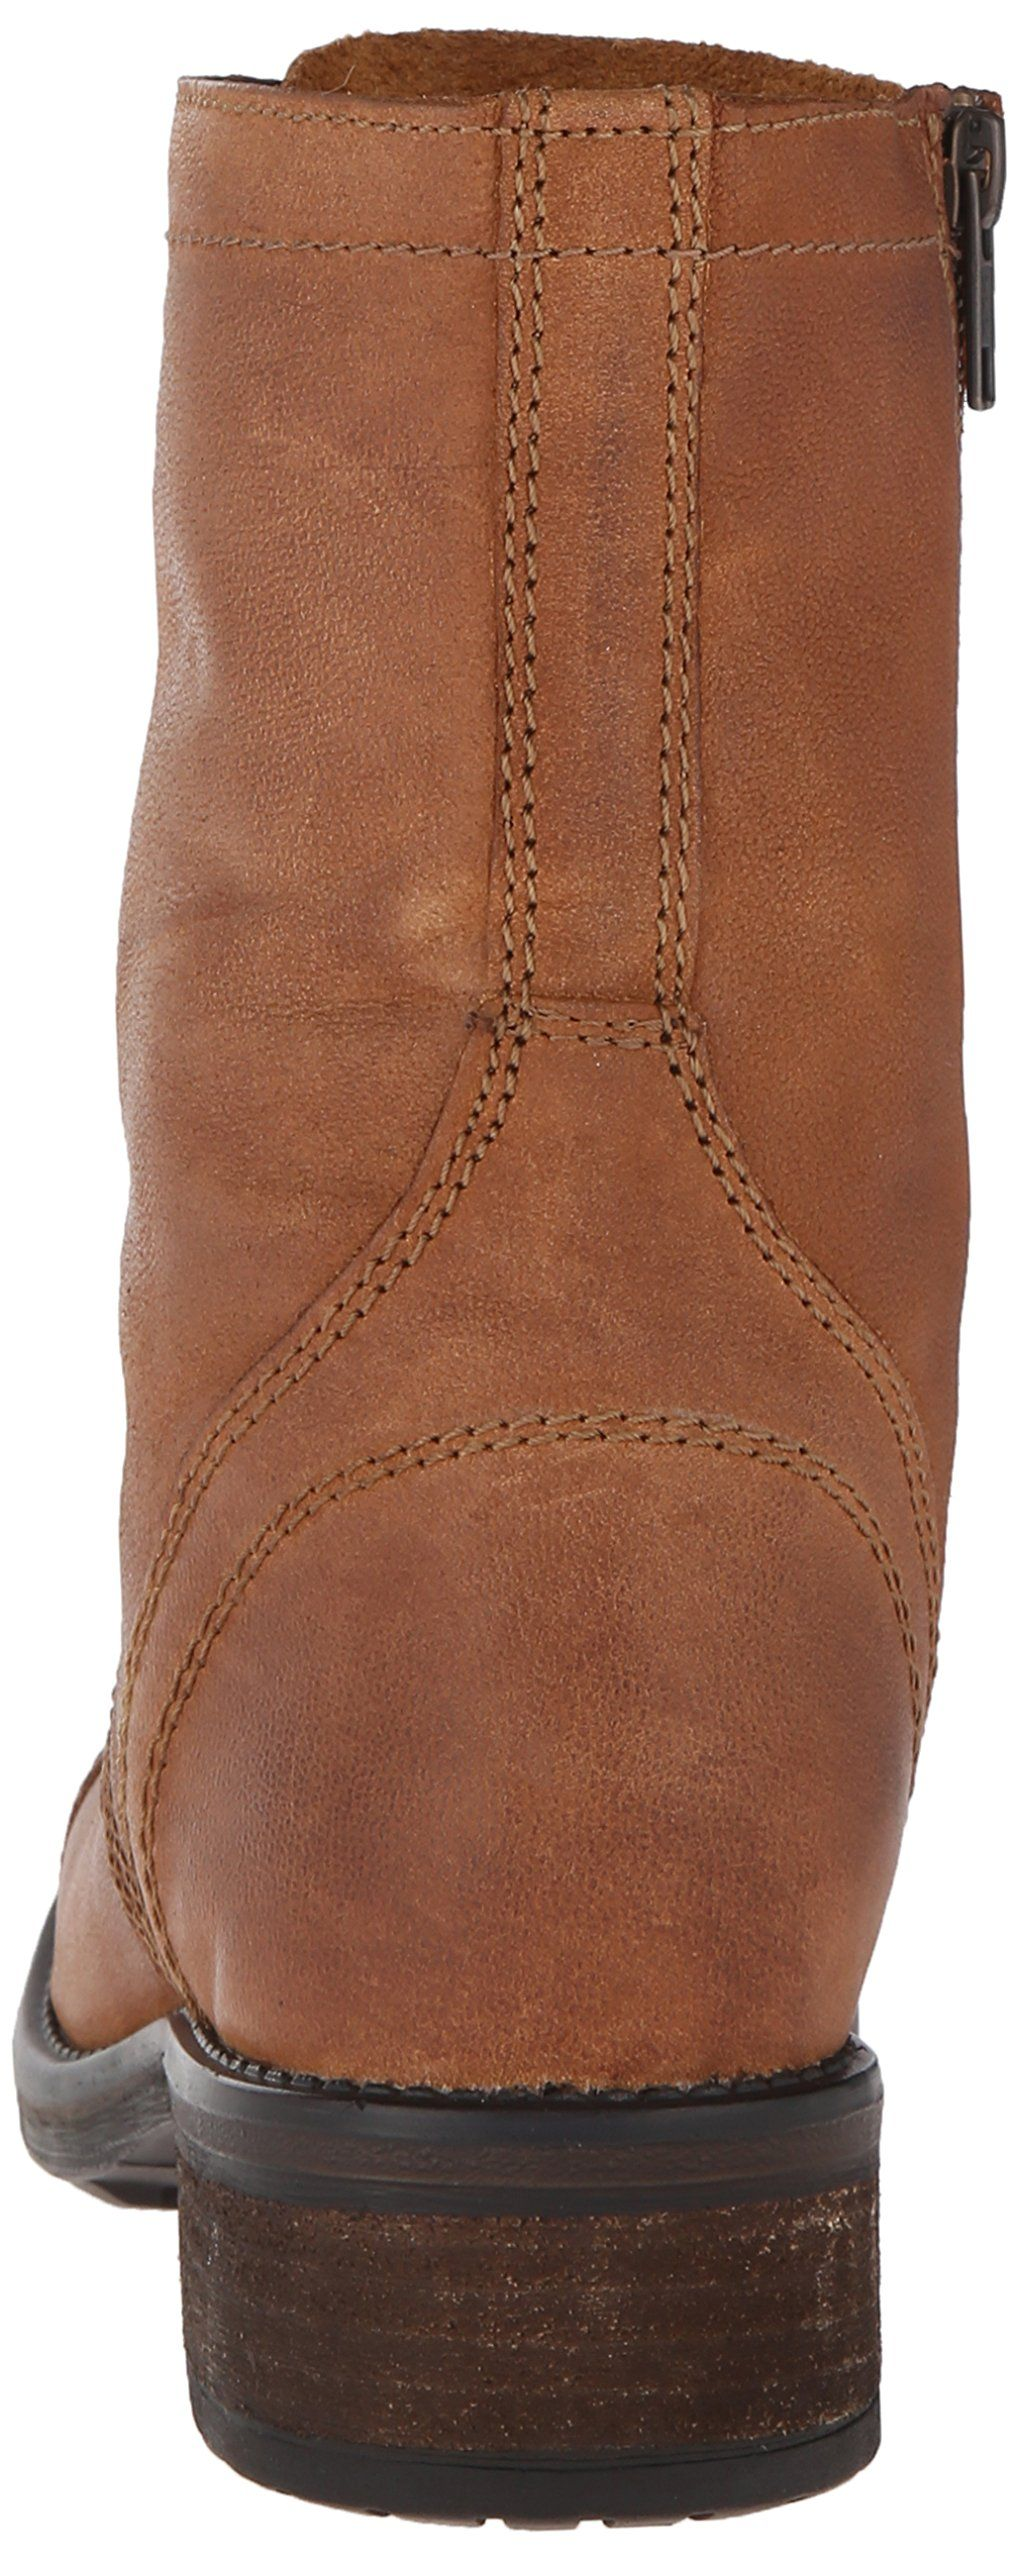 e5f8f1d03cd Steve Madden Womens Troopa 2.0 Combat Boot Cognac Leather 7.5 M US --  Details can be found by clicking on the image. (This is an affiliate link)    ...